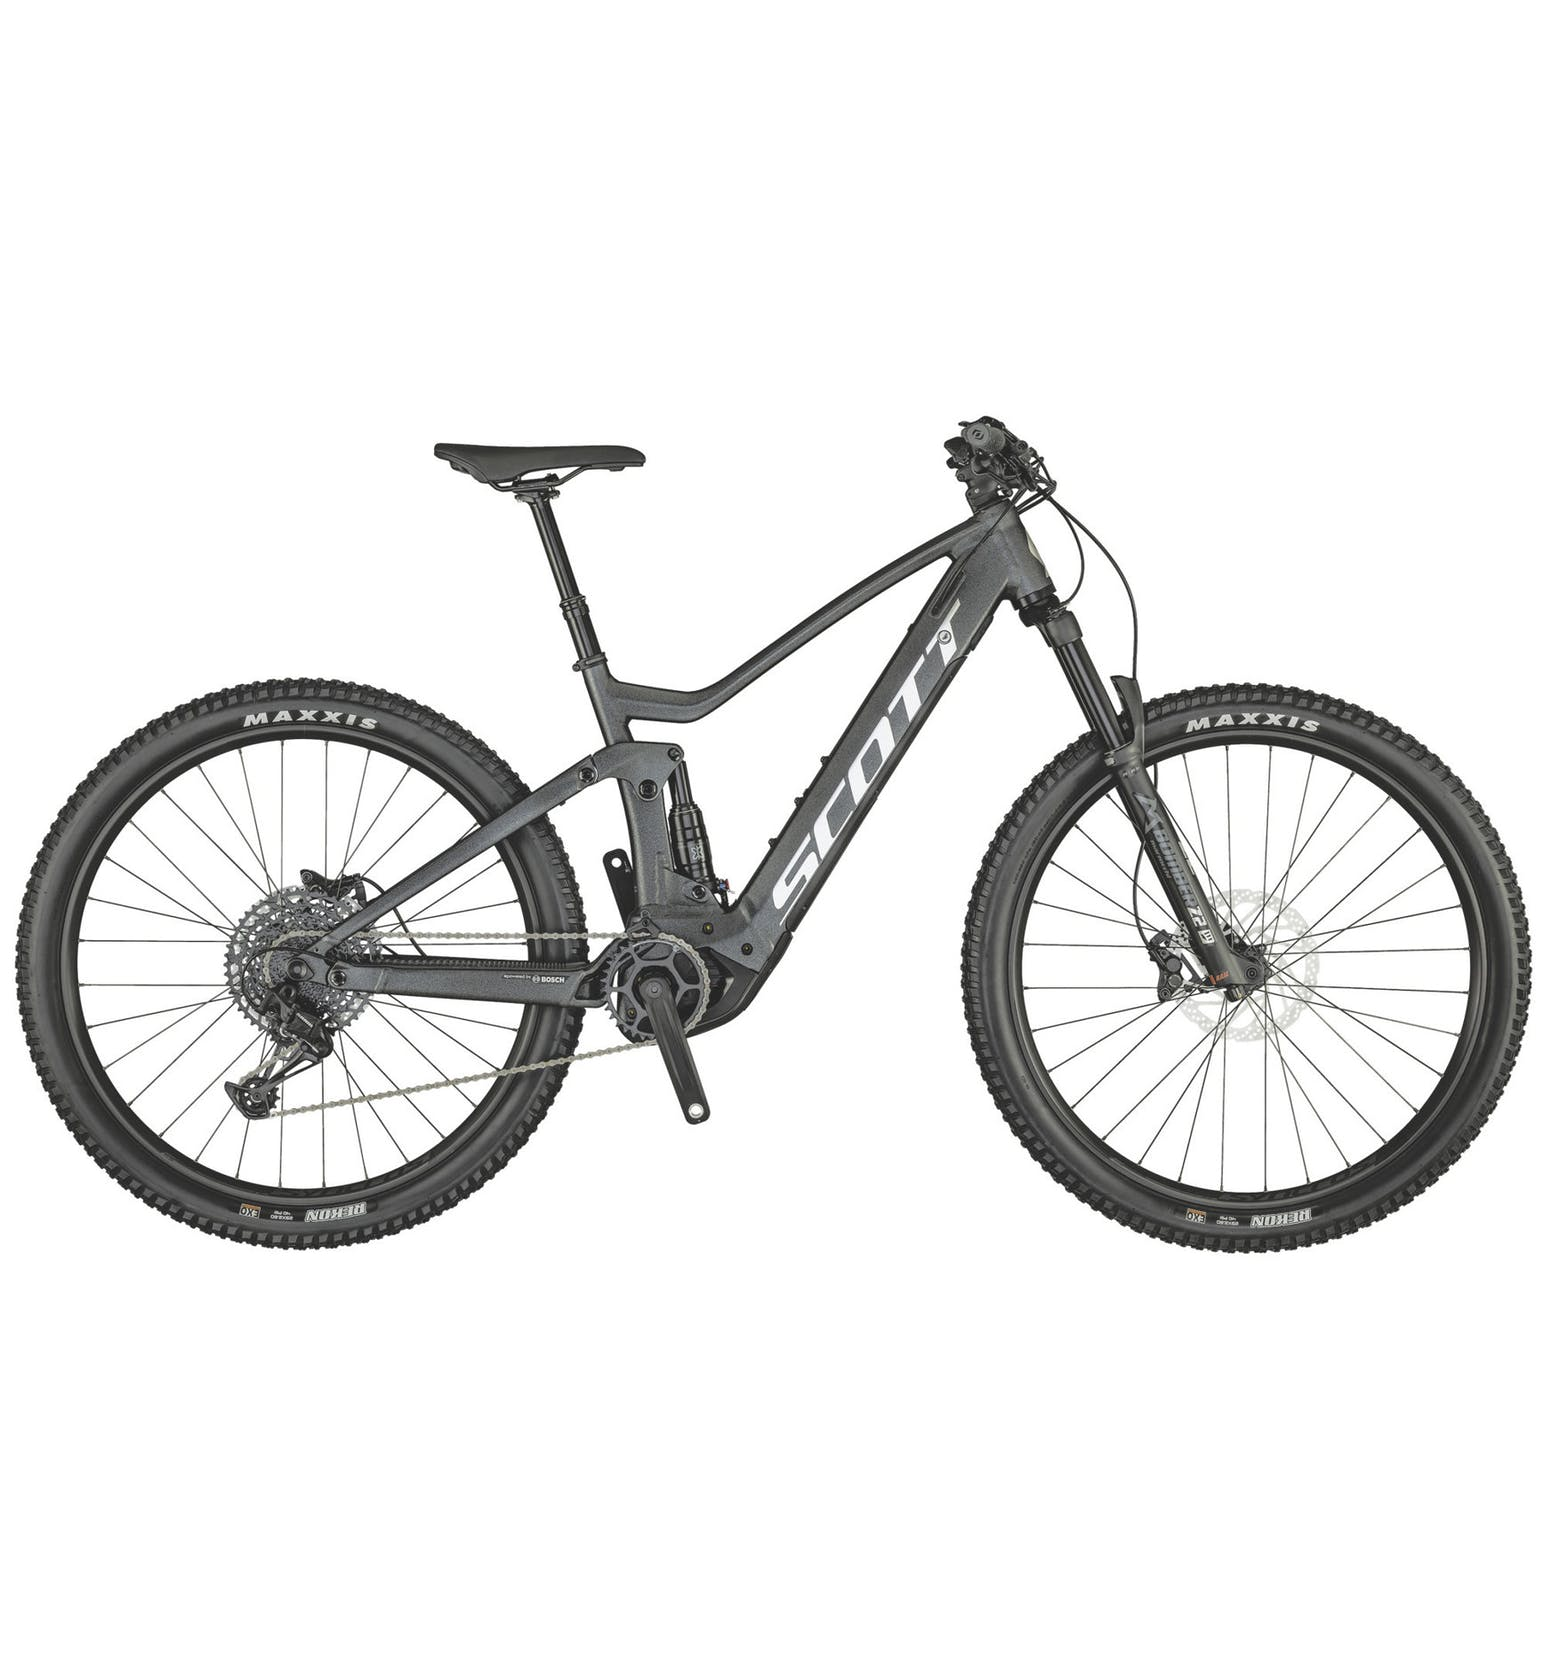 SCOTT Strike eRide 930 (2021) - MTB elettrica trail